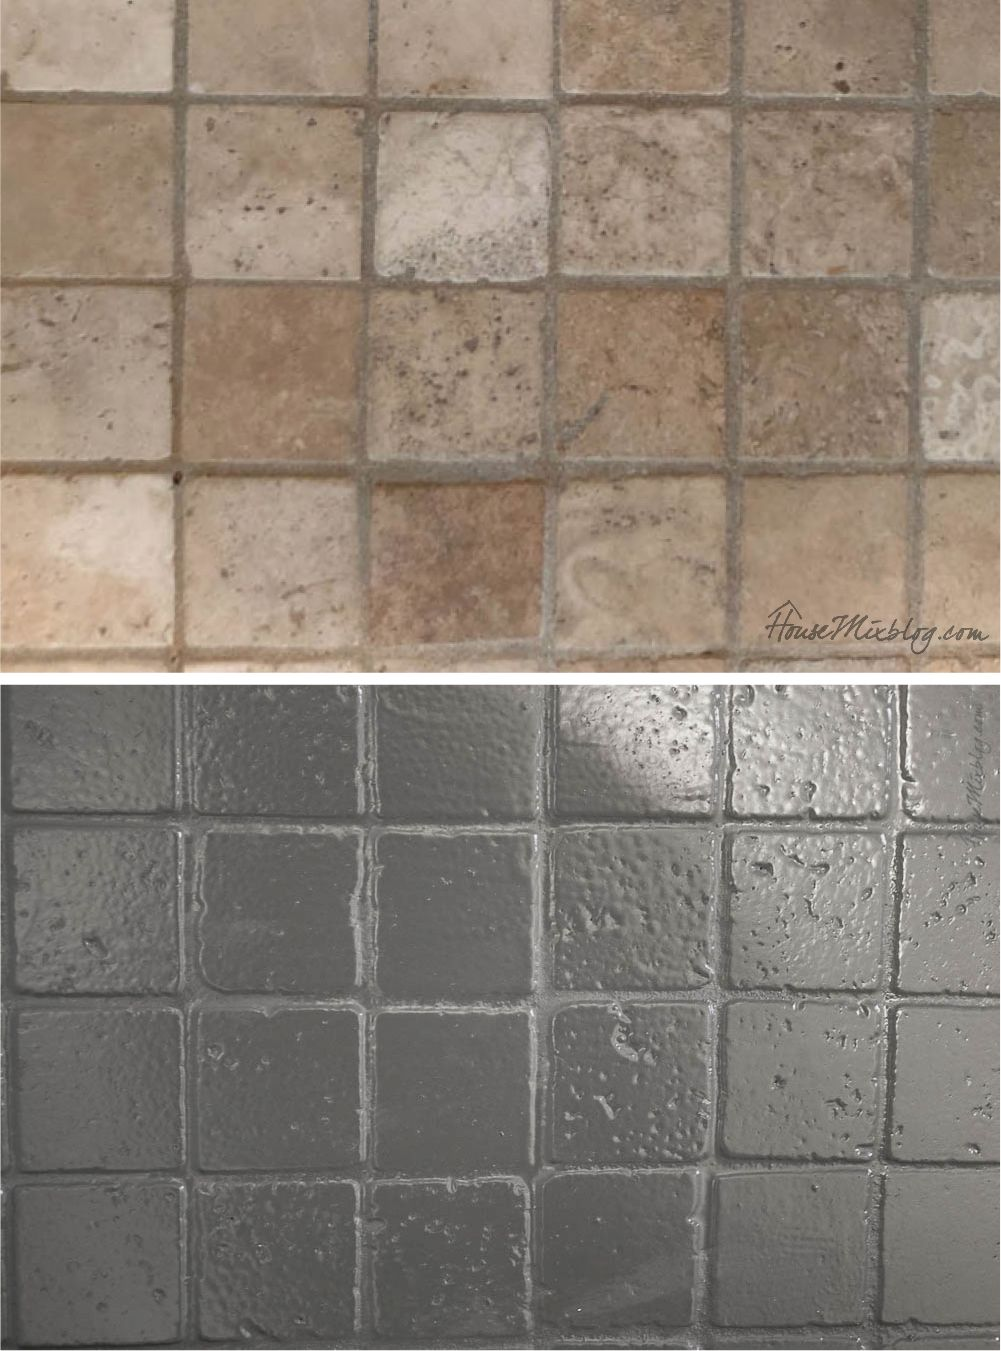 How To Paint Bathroom Tile Floor Shower Backsplash Painting Bathroom Tiles Painting Shower Shower Floor Tile